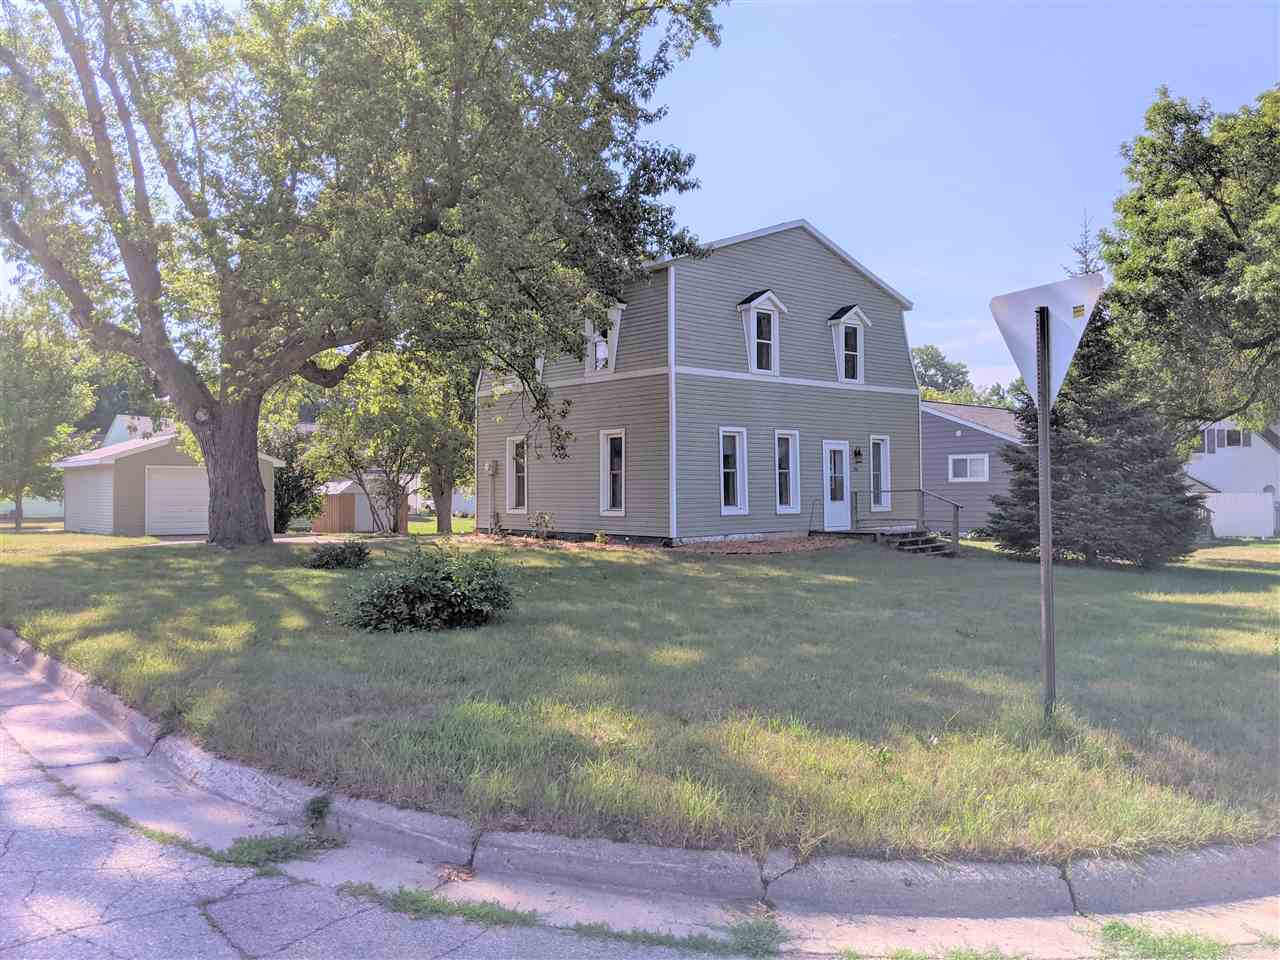 720 N 11th St, Estherville, IA 51334